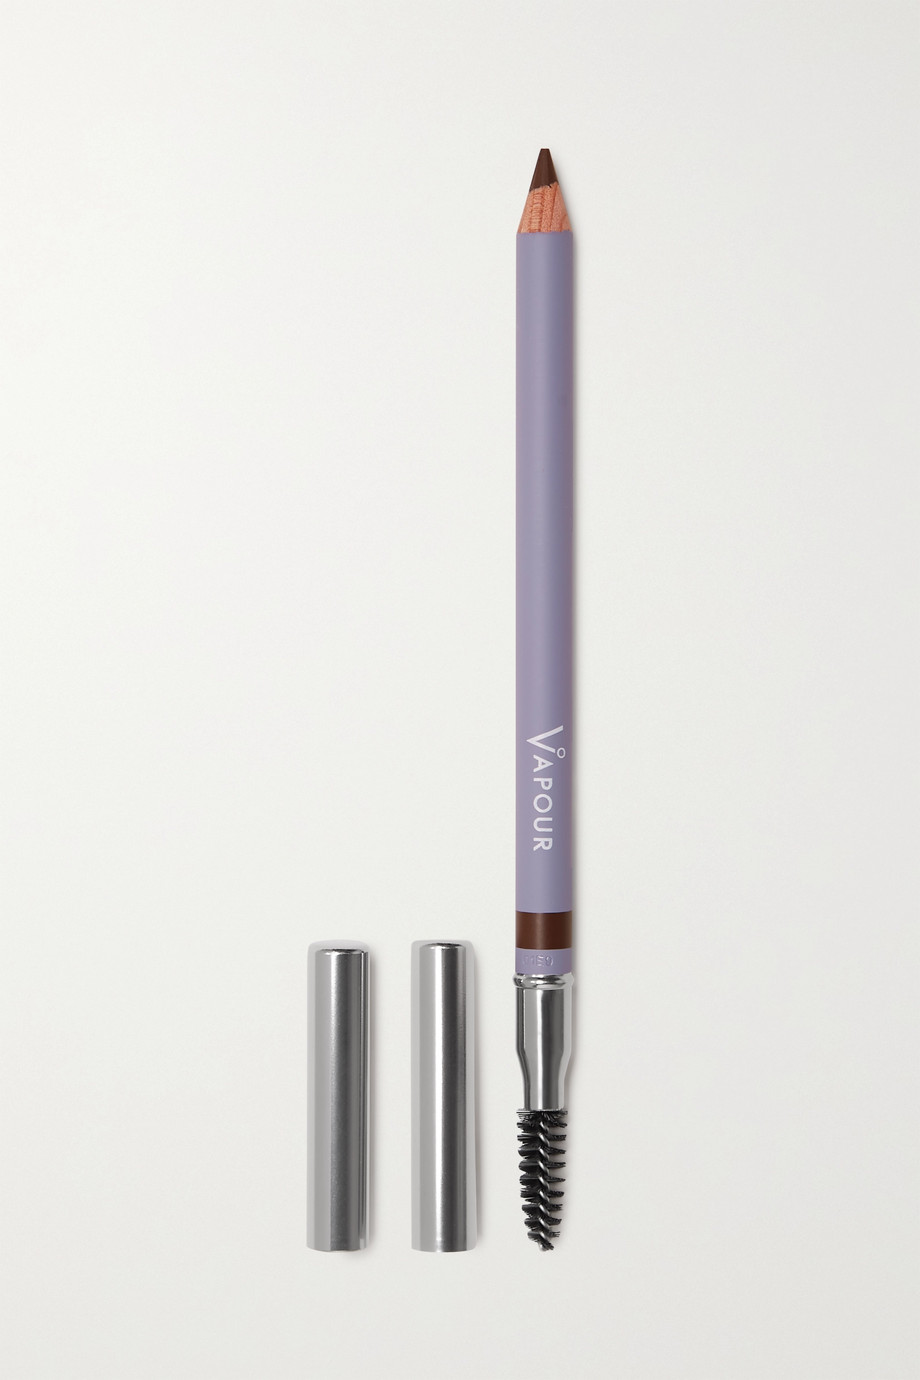 Vapour Beauty Brow Definer - Storm